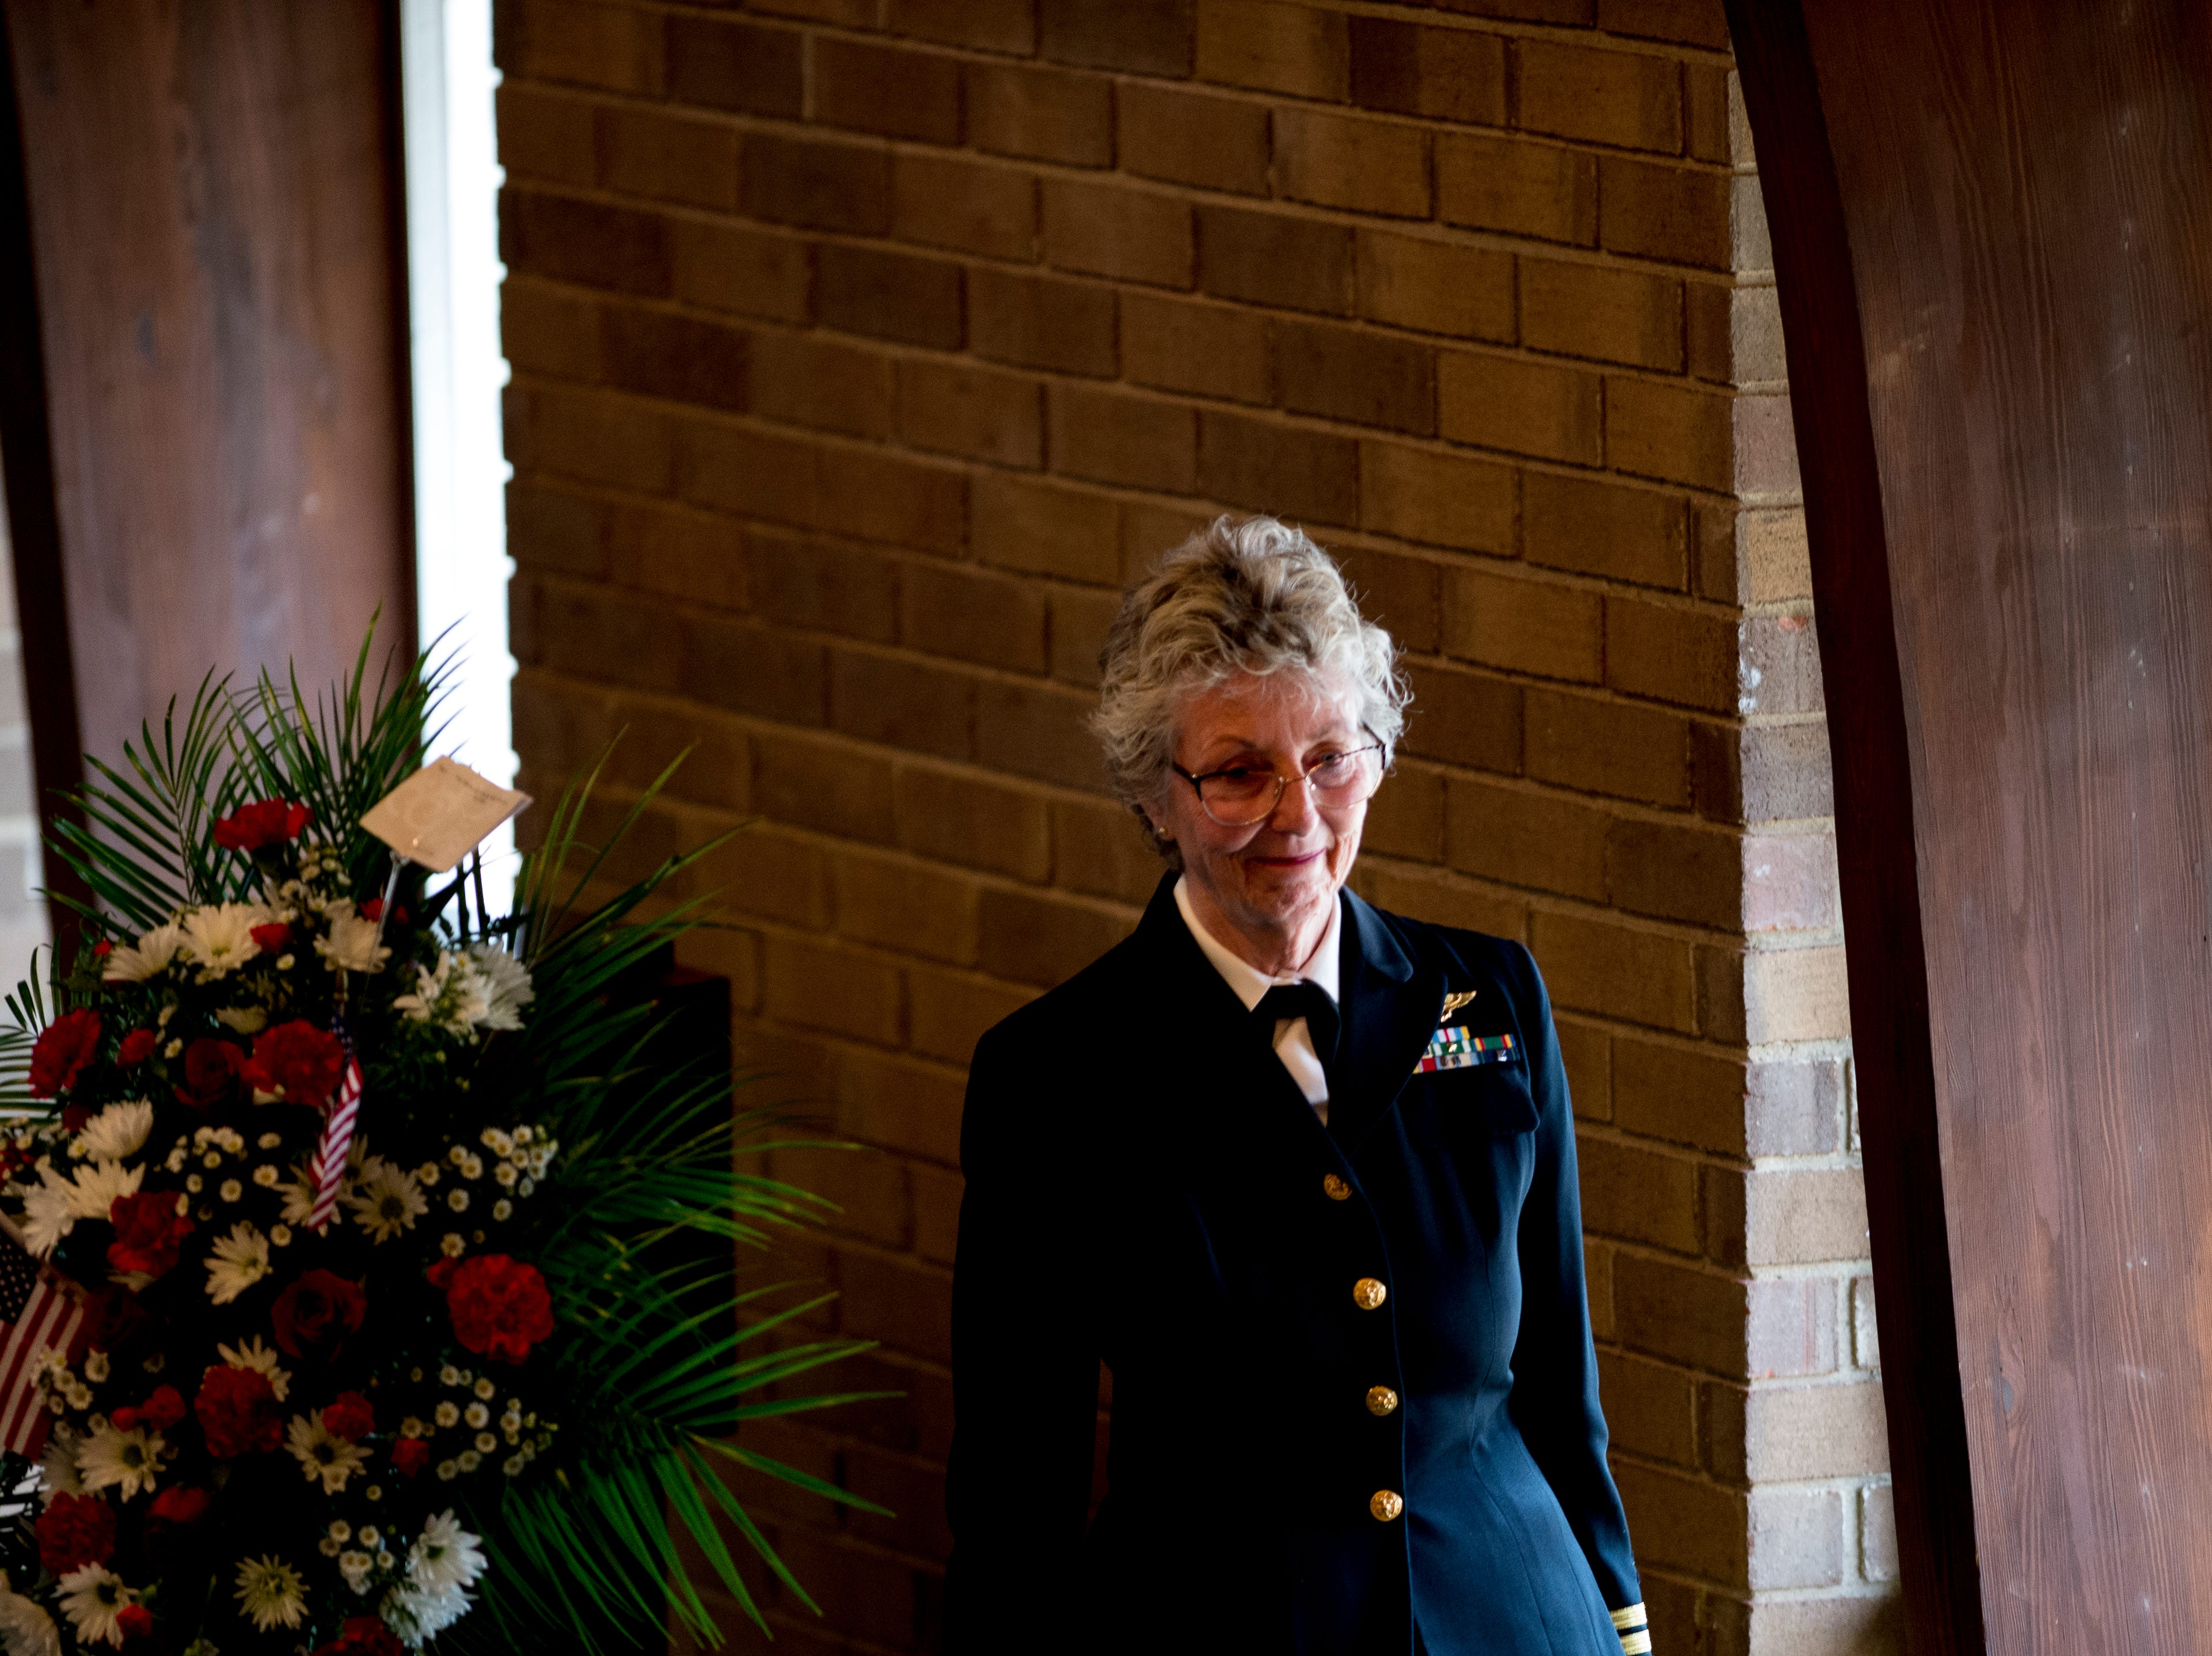 US Navy Captain Mary Louise Jorgenson Griffon, retired, walks off the stage after giving a speech during a funeral service for Rosemary Mariner, the US Navy's first female fighter pilot, at Norris United Methodist Church in Norris, Tennessee on Saturday, February 2, 2019. Mariner died January 24th of cancer.